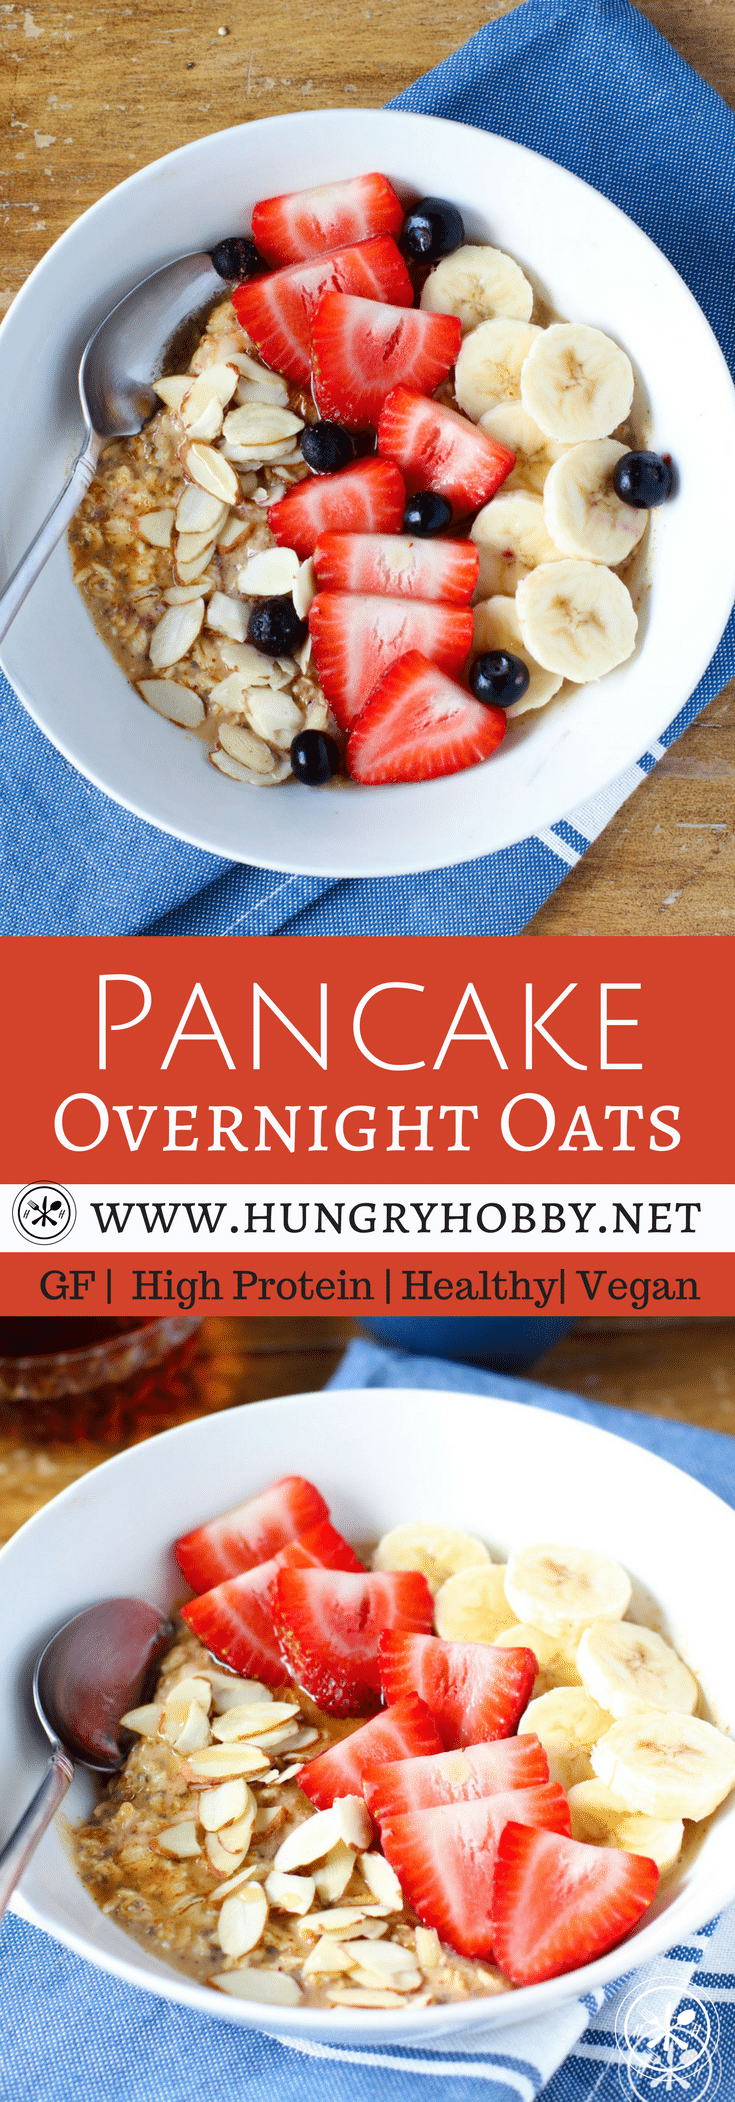 Do you want oatmeal or pancakes for breakfast but don't have time for either? No problem, pancake overnight oats give you a healthy quick meal that satisfies both cravings at once. #glutenfree #vegan #healthy #recipes #overnightoats #oats #pancakes #hungryhobby